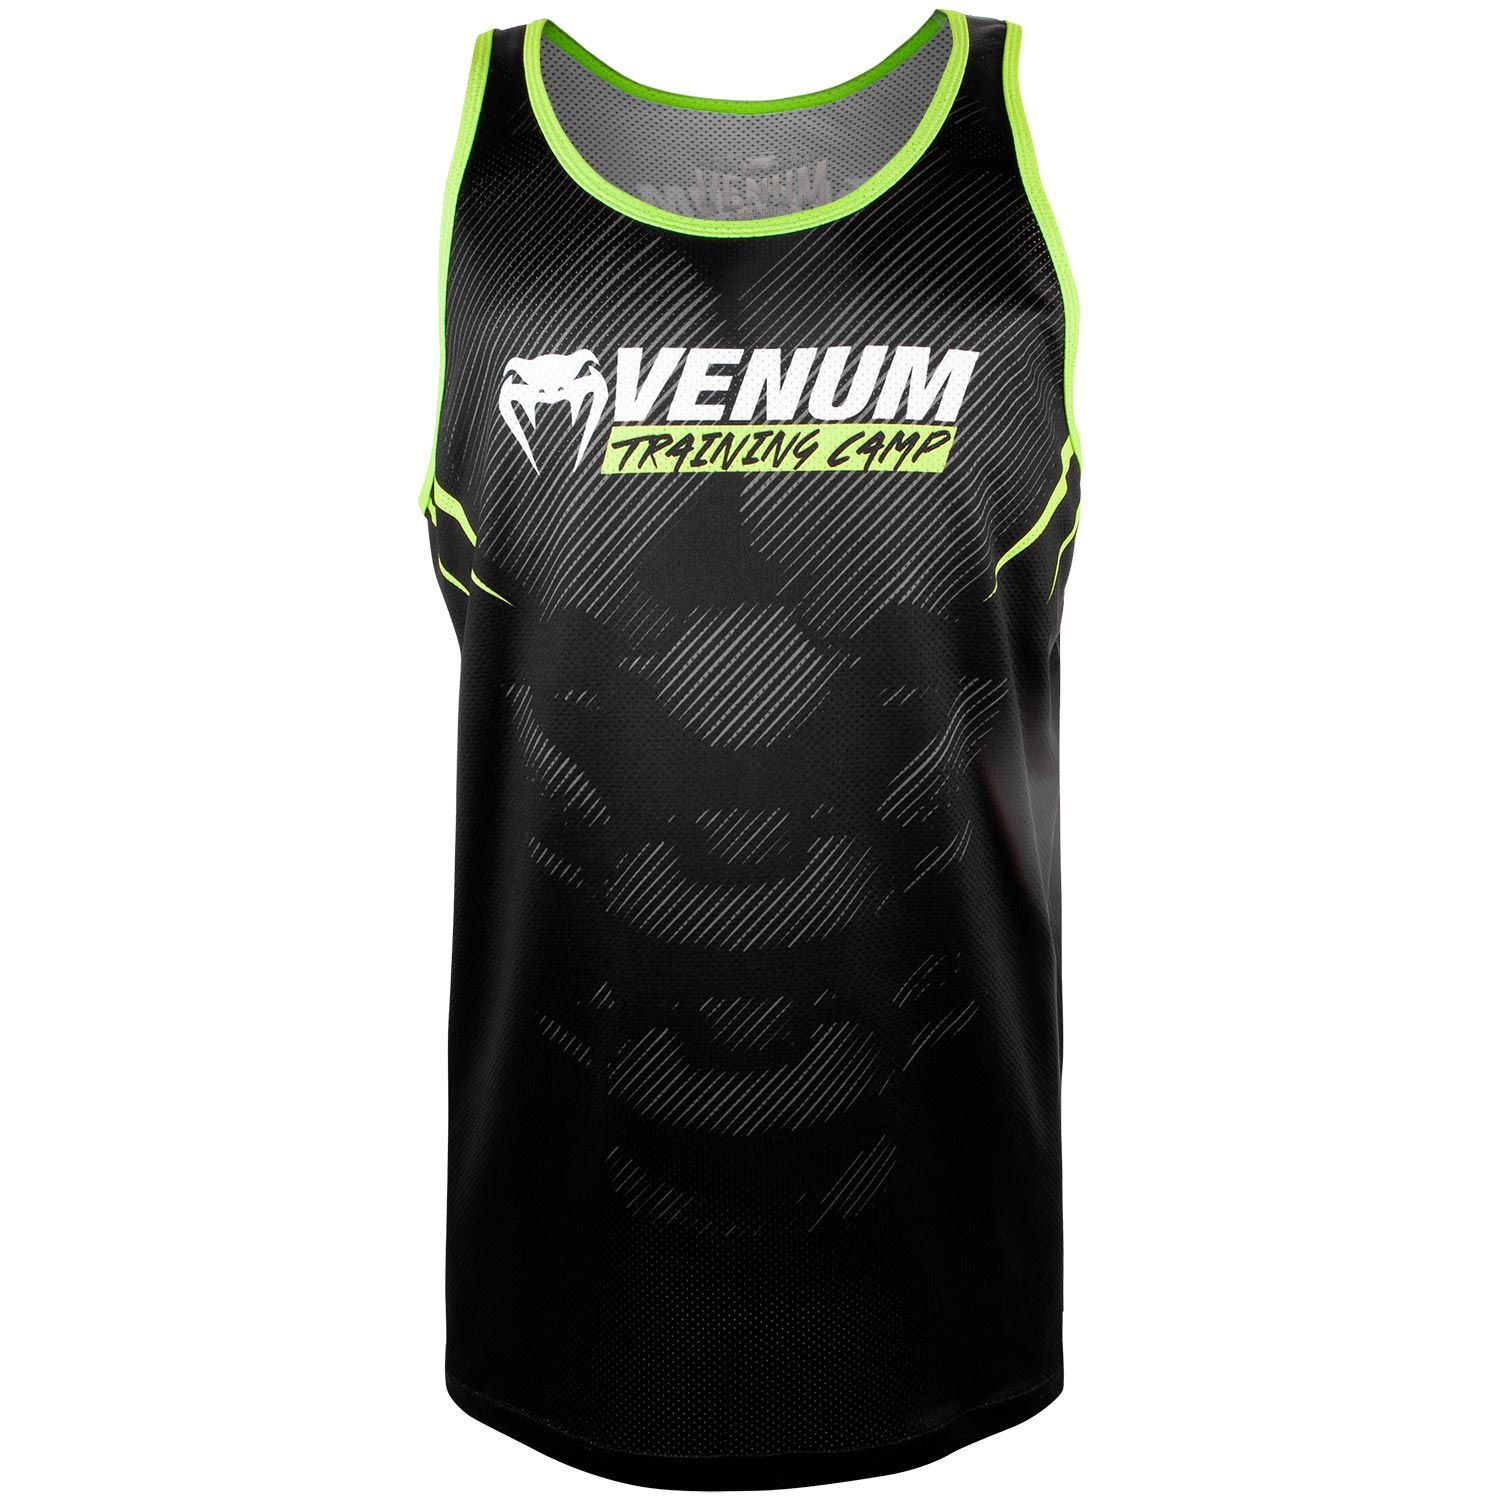 VENUM TRAINING CAMP 2.0 Atléta